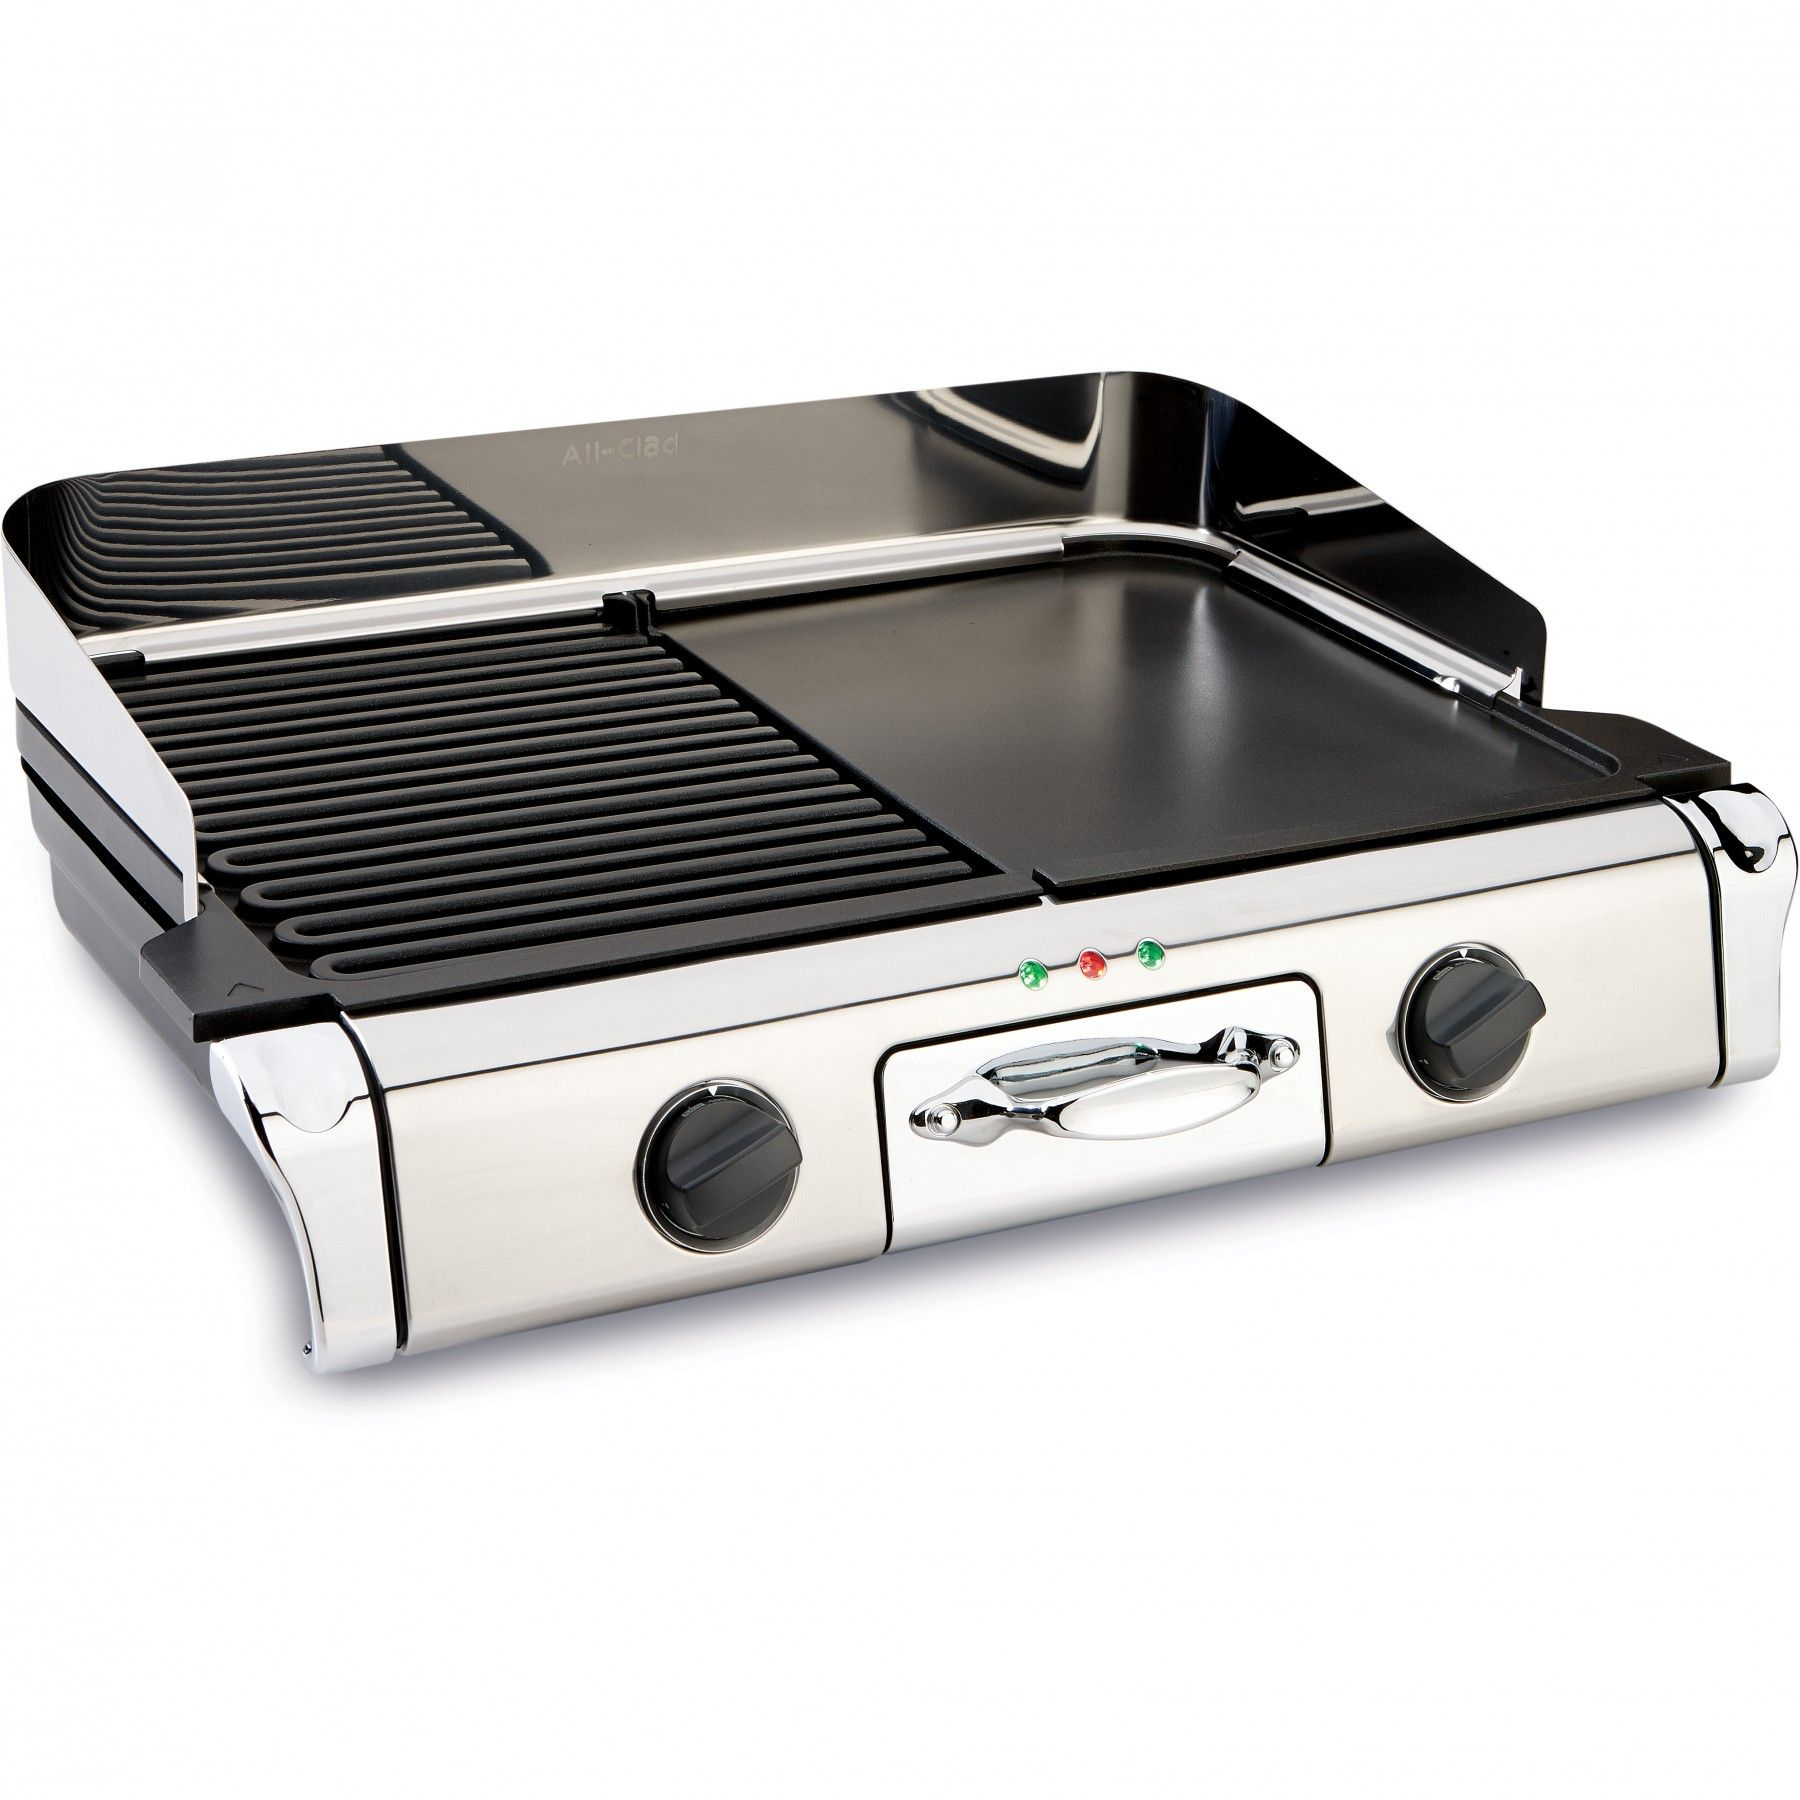 Whip Up Brunch For A Crowd With This All New All Clad Electric Grill And Griddle This Electric Grill Griddle Combo Un Electric Grill Electric Griddle All Clad